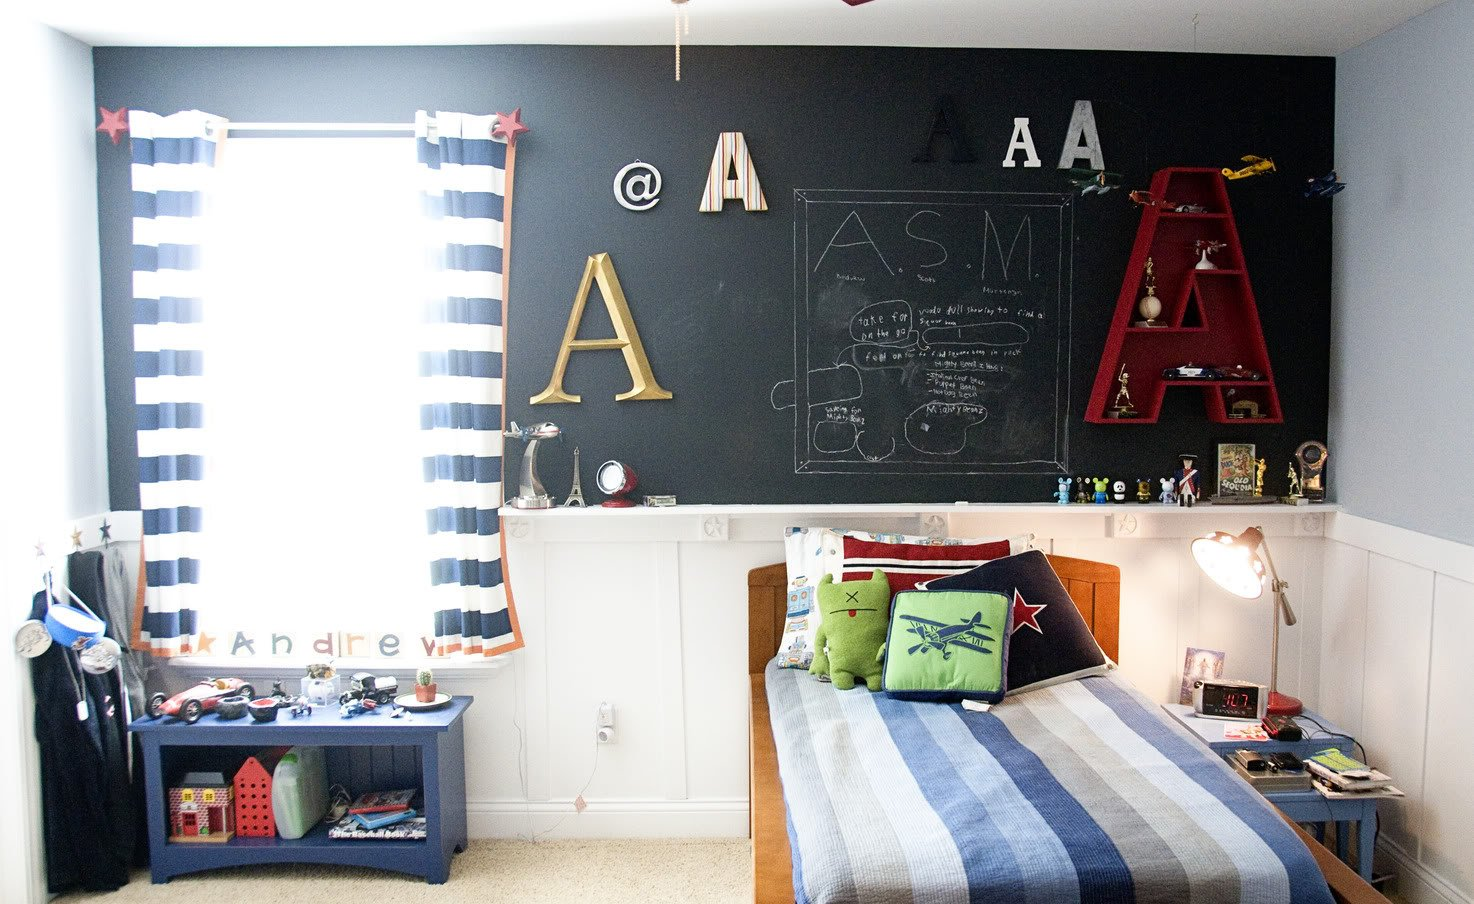 Cool bedroom ideas 12 boy rooms today 39 s creative life 5 year old boy room decoration